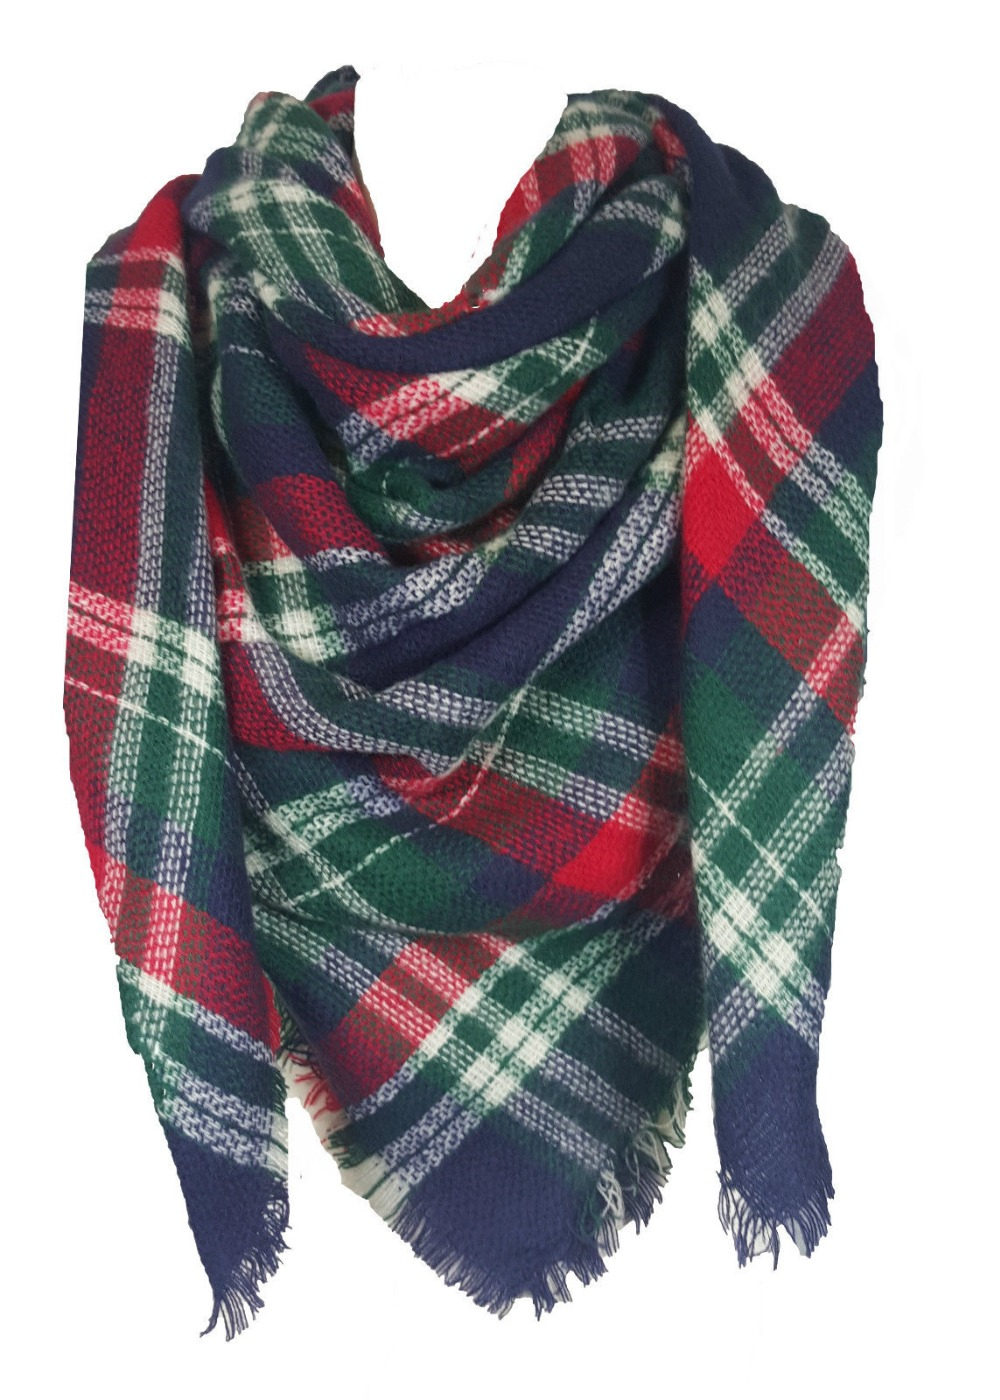 Unisex Ladies Mens Square font b Tartan b font Scarf Shawl Wrap Pashmina Winter Warm BU